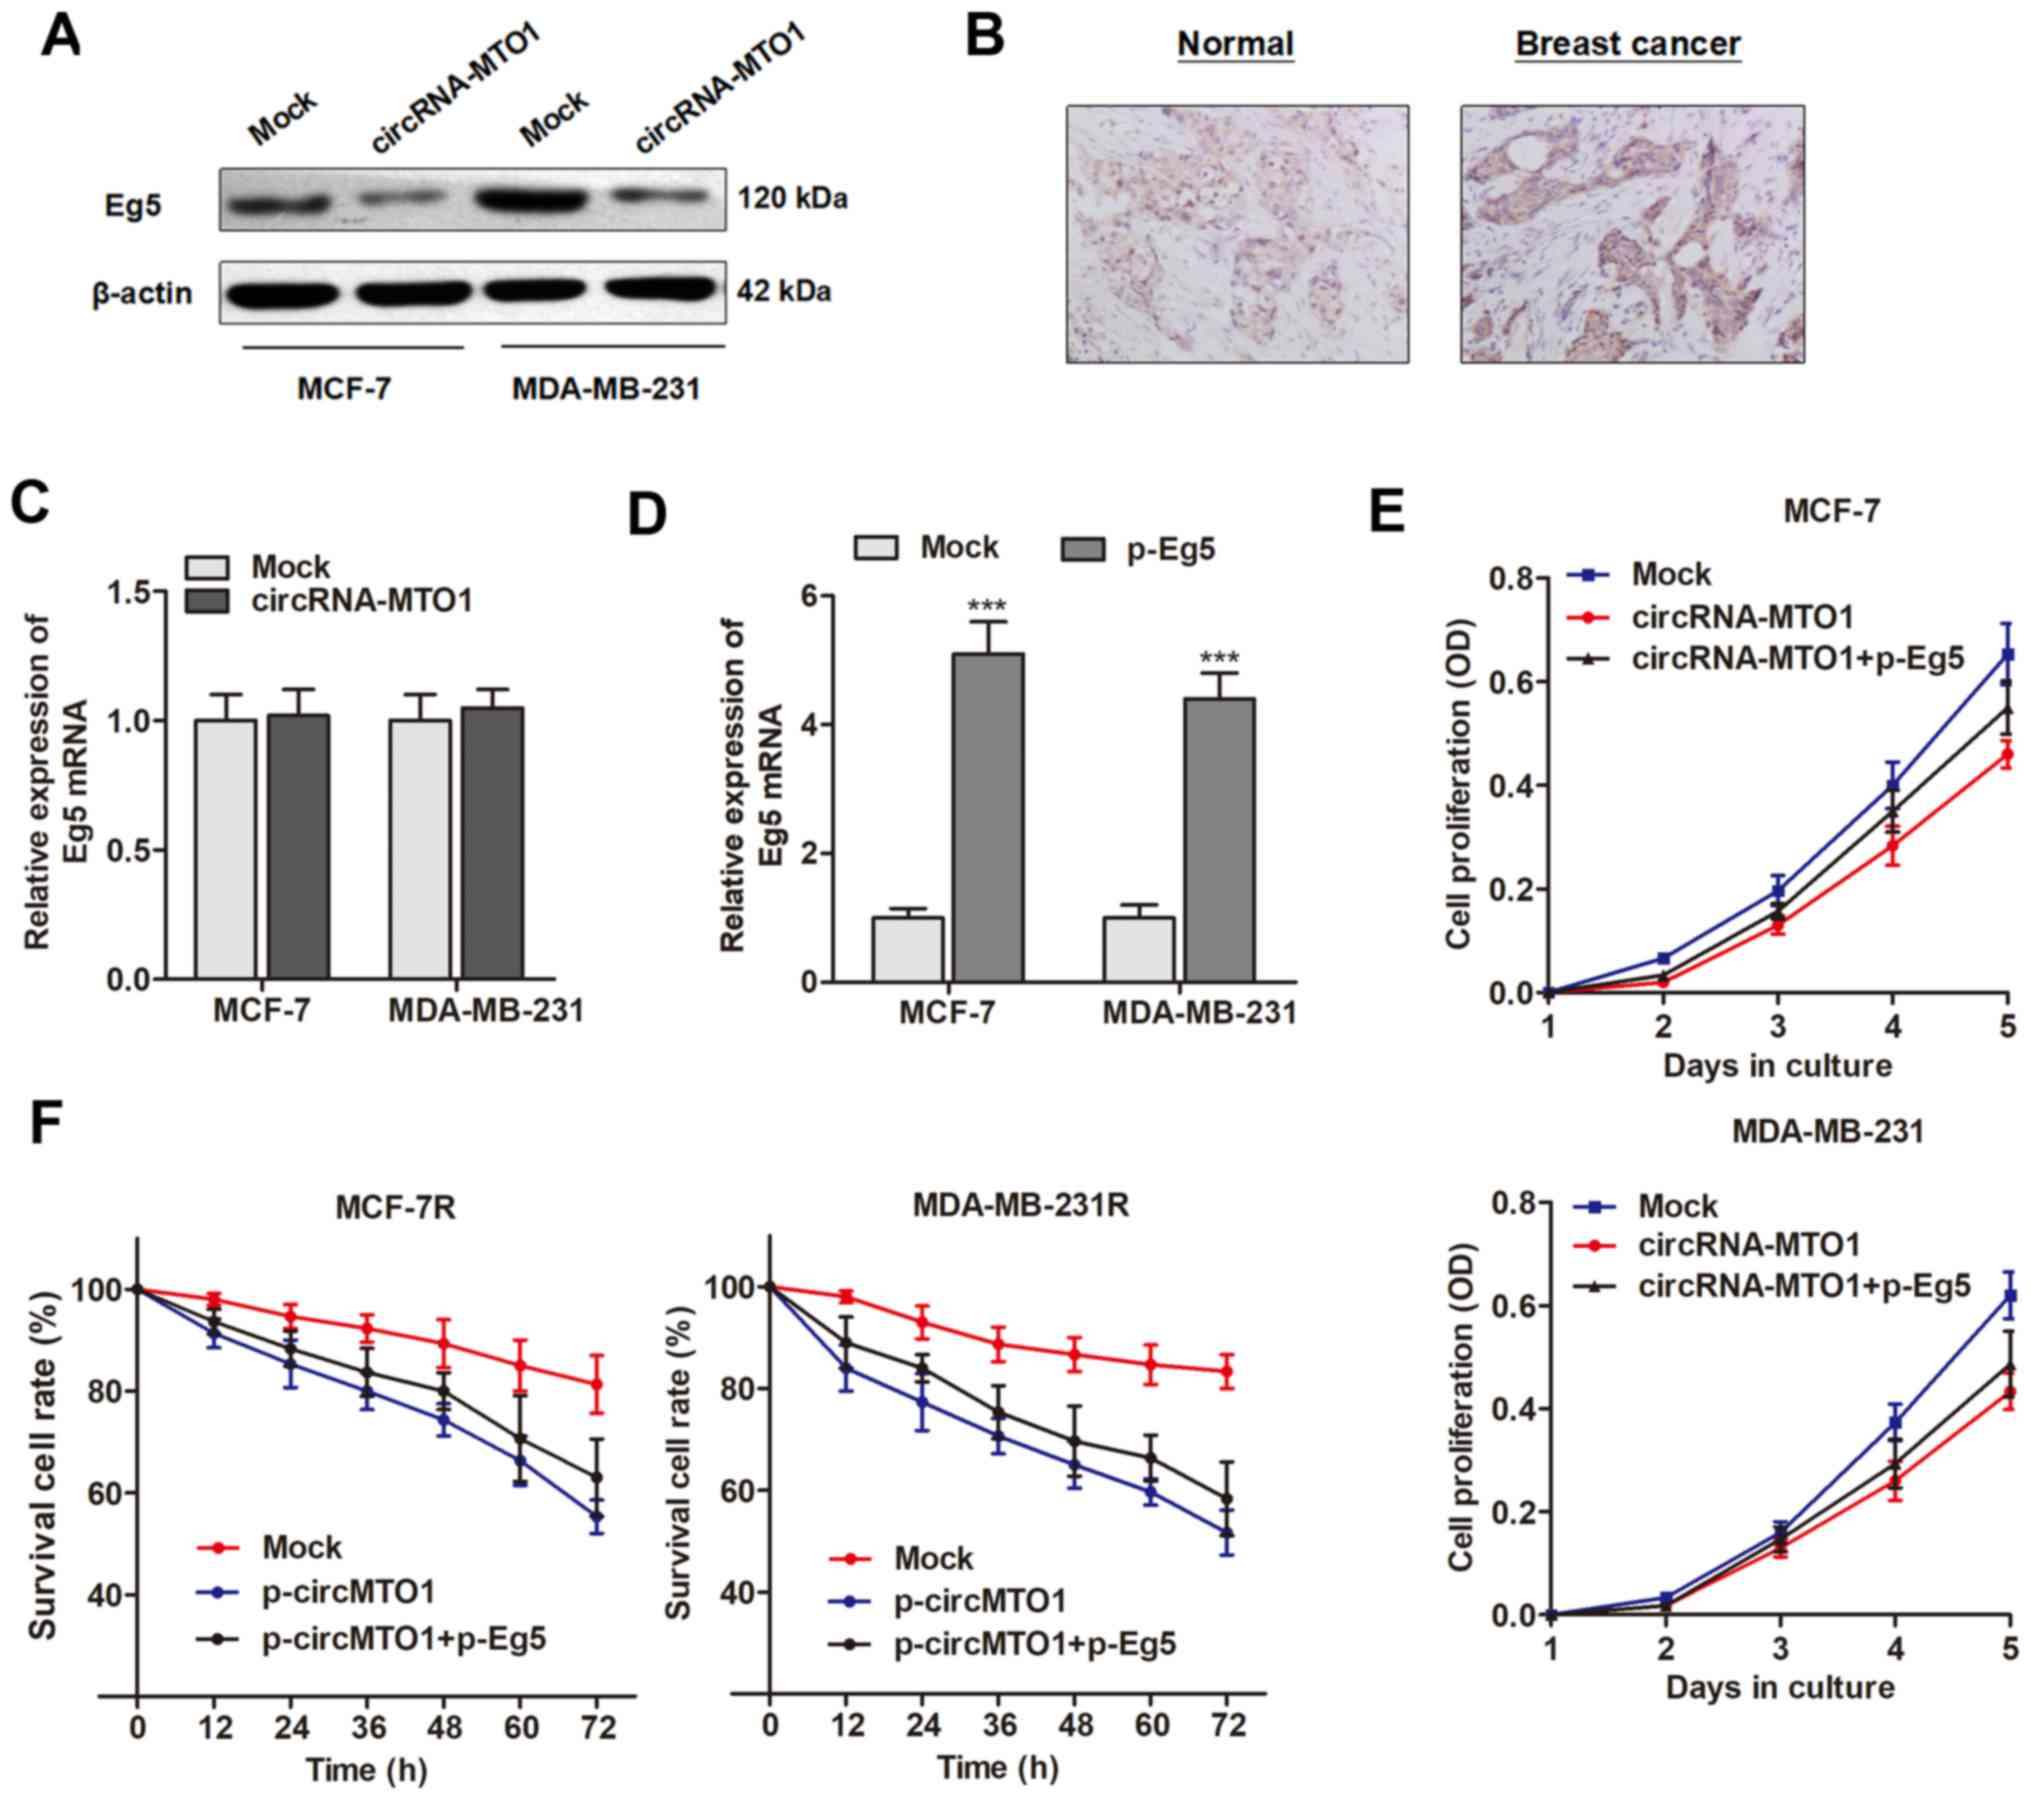 Circular Rnamto1 Suppresses Breast Cancer Cell Viability And Http Circuitdiagramorg Automaticnimhbatterychargercircuithtml Eg5 Protein Is A Functional Target Of Circrna Mto1 Was Downregulated By Overexpression In Mcf 7 Mda Mb 231 Cells